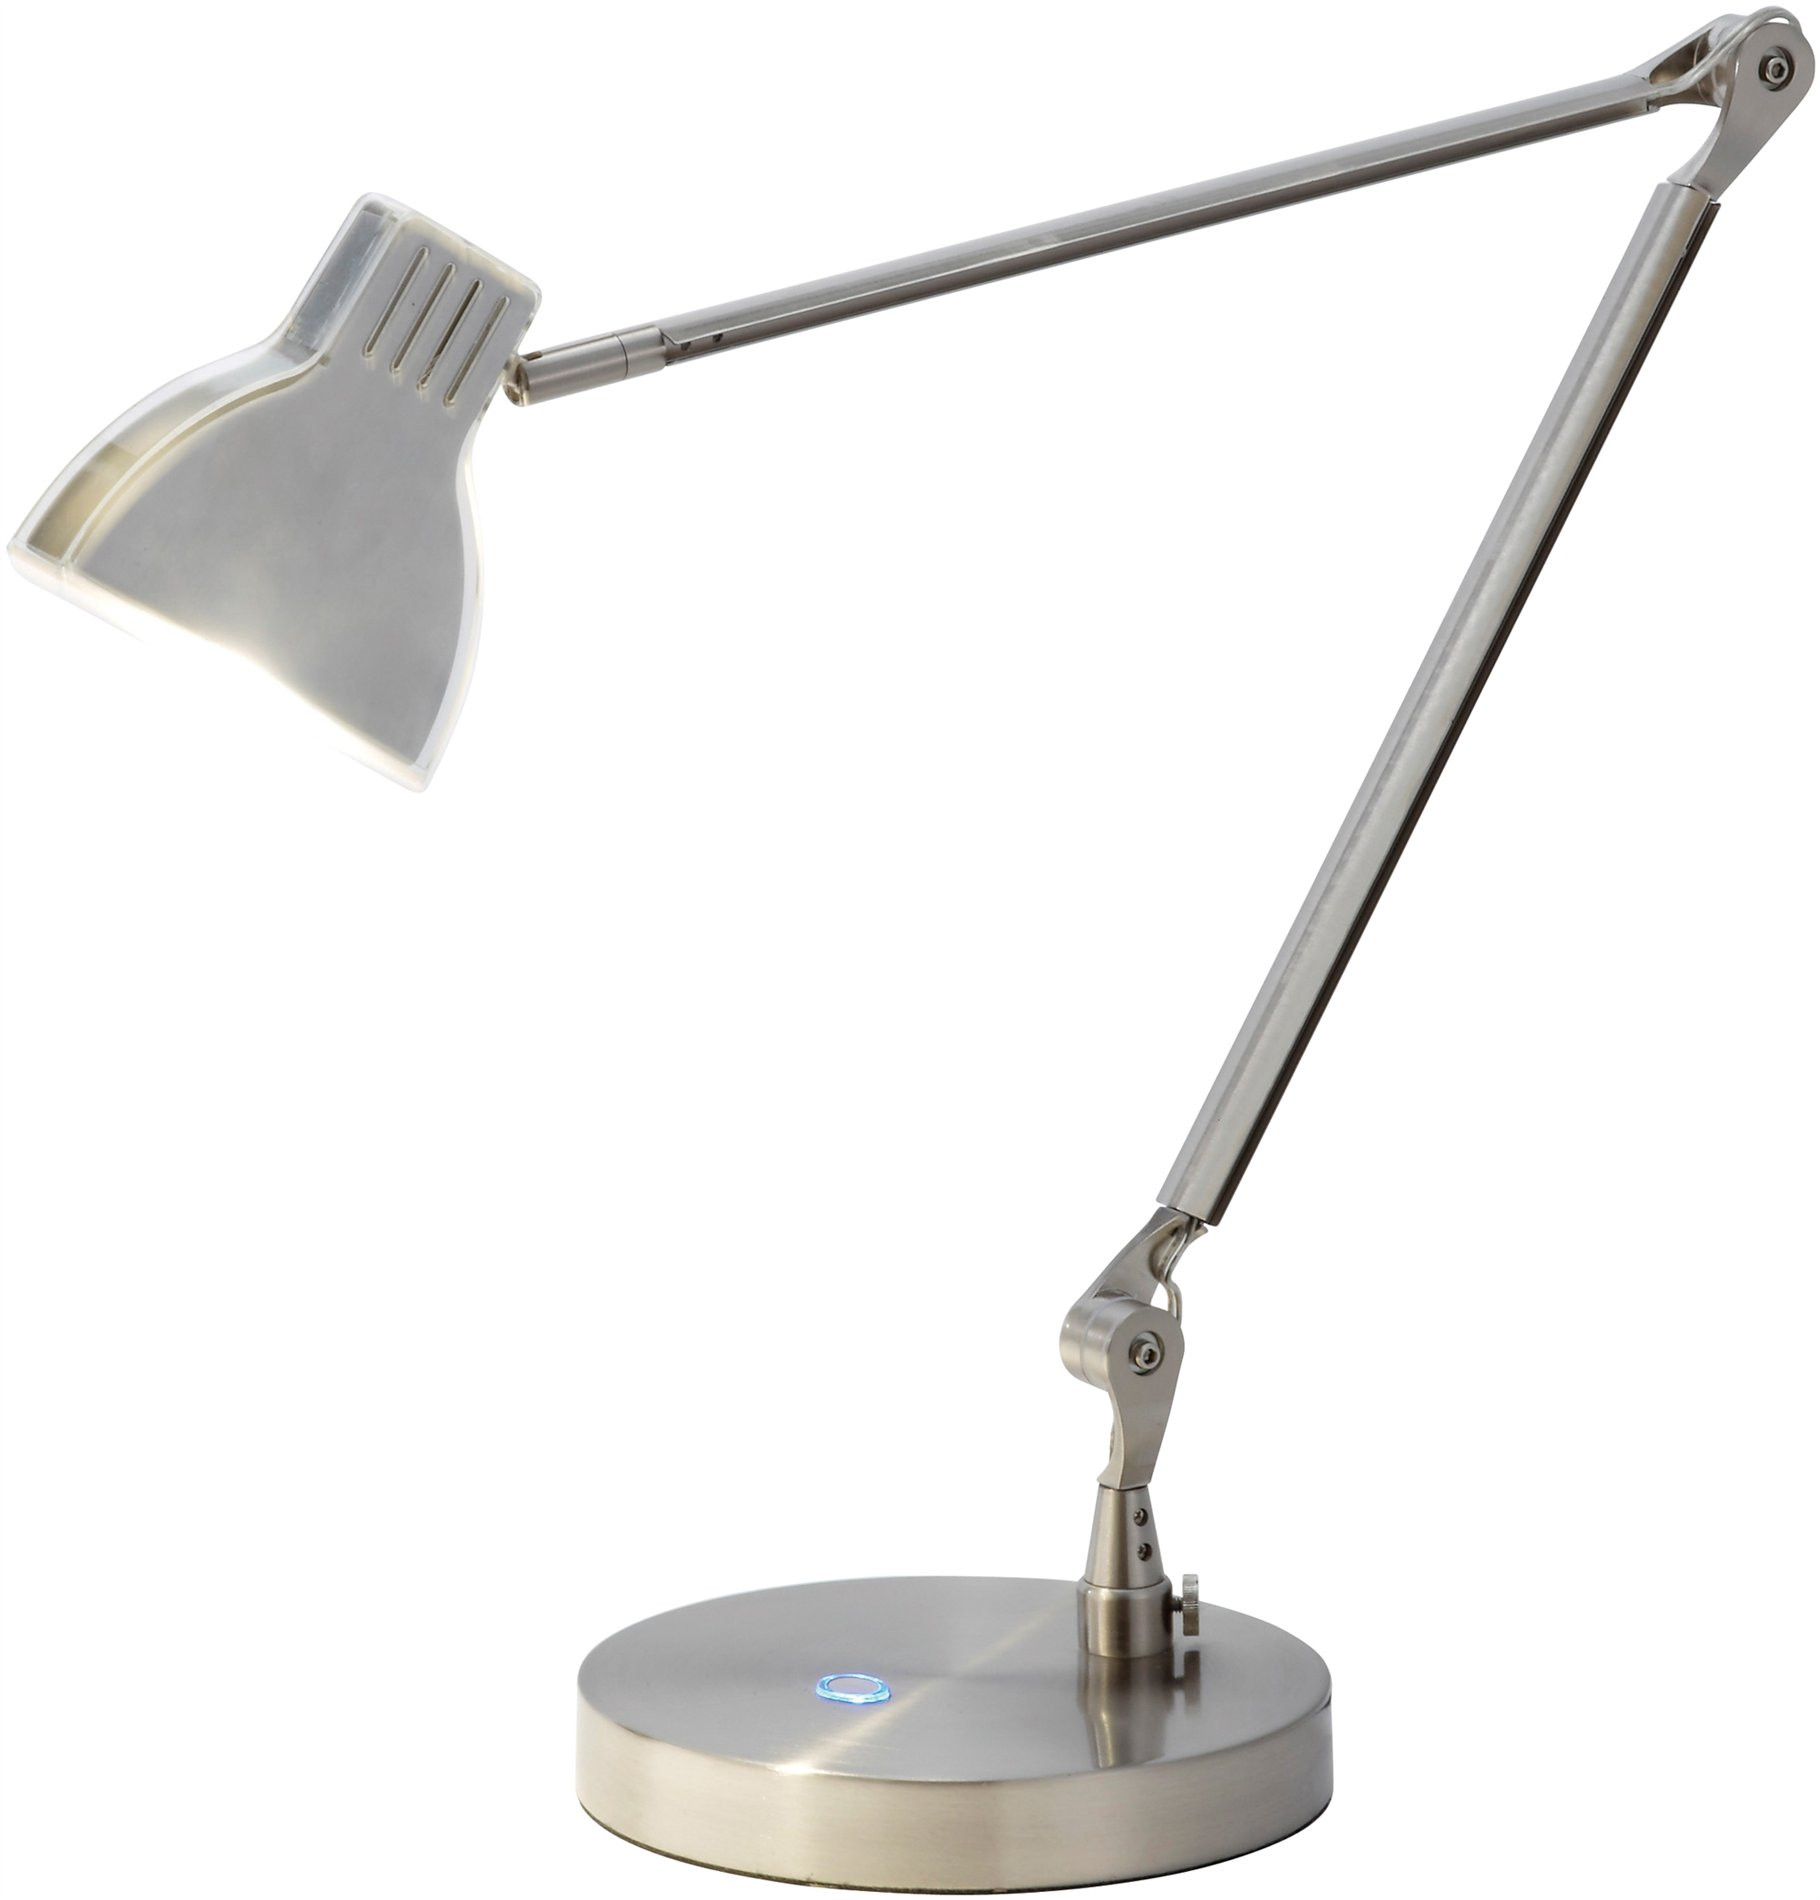 Best ideas about Silver Desk Lamp . Save or Pin Adesso 3181 22 Silver Contemporary LED Architect Desk Lamp Now.